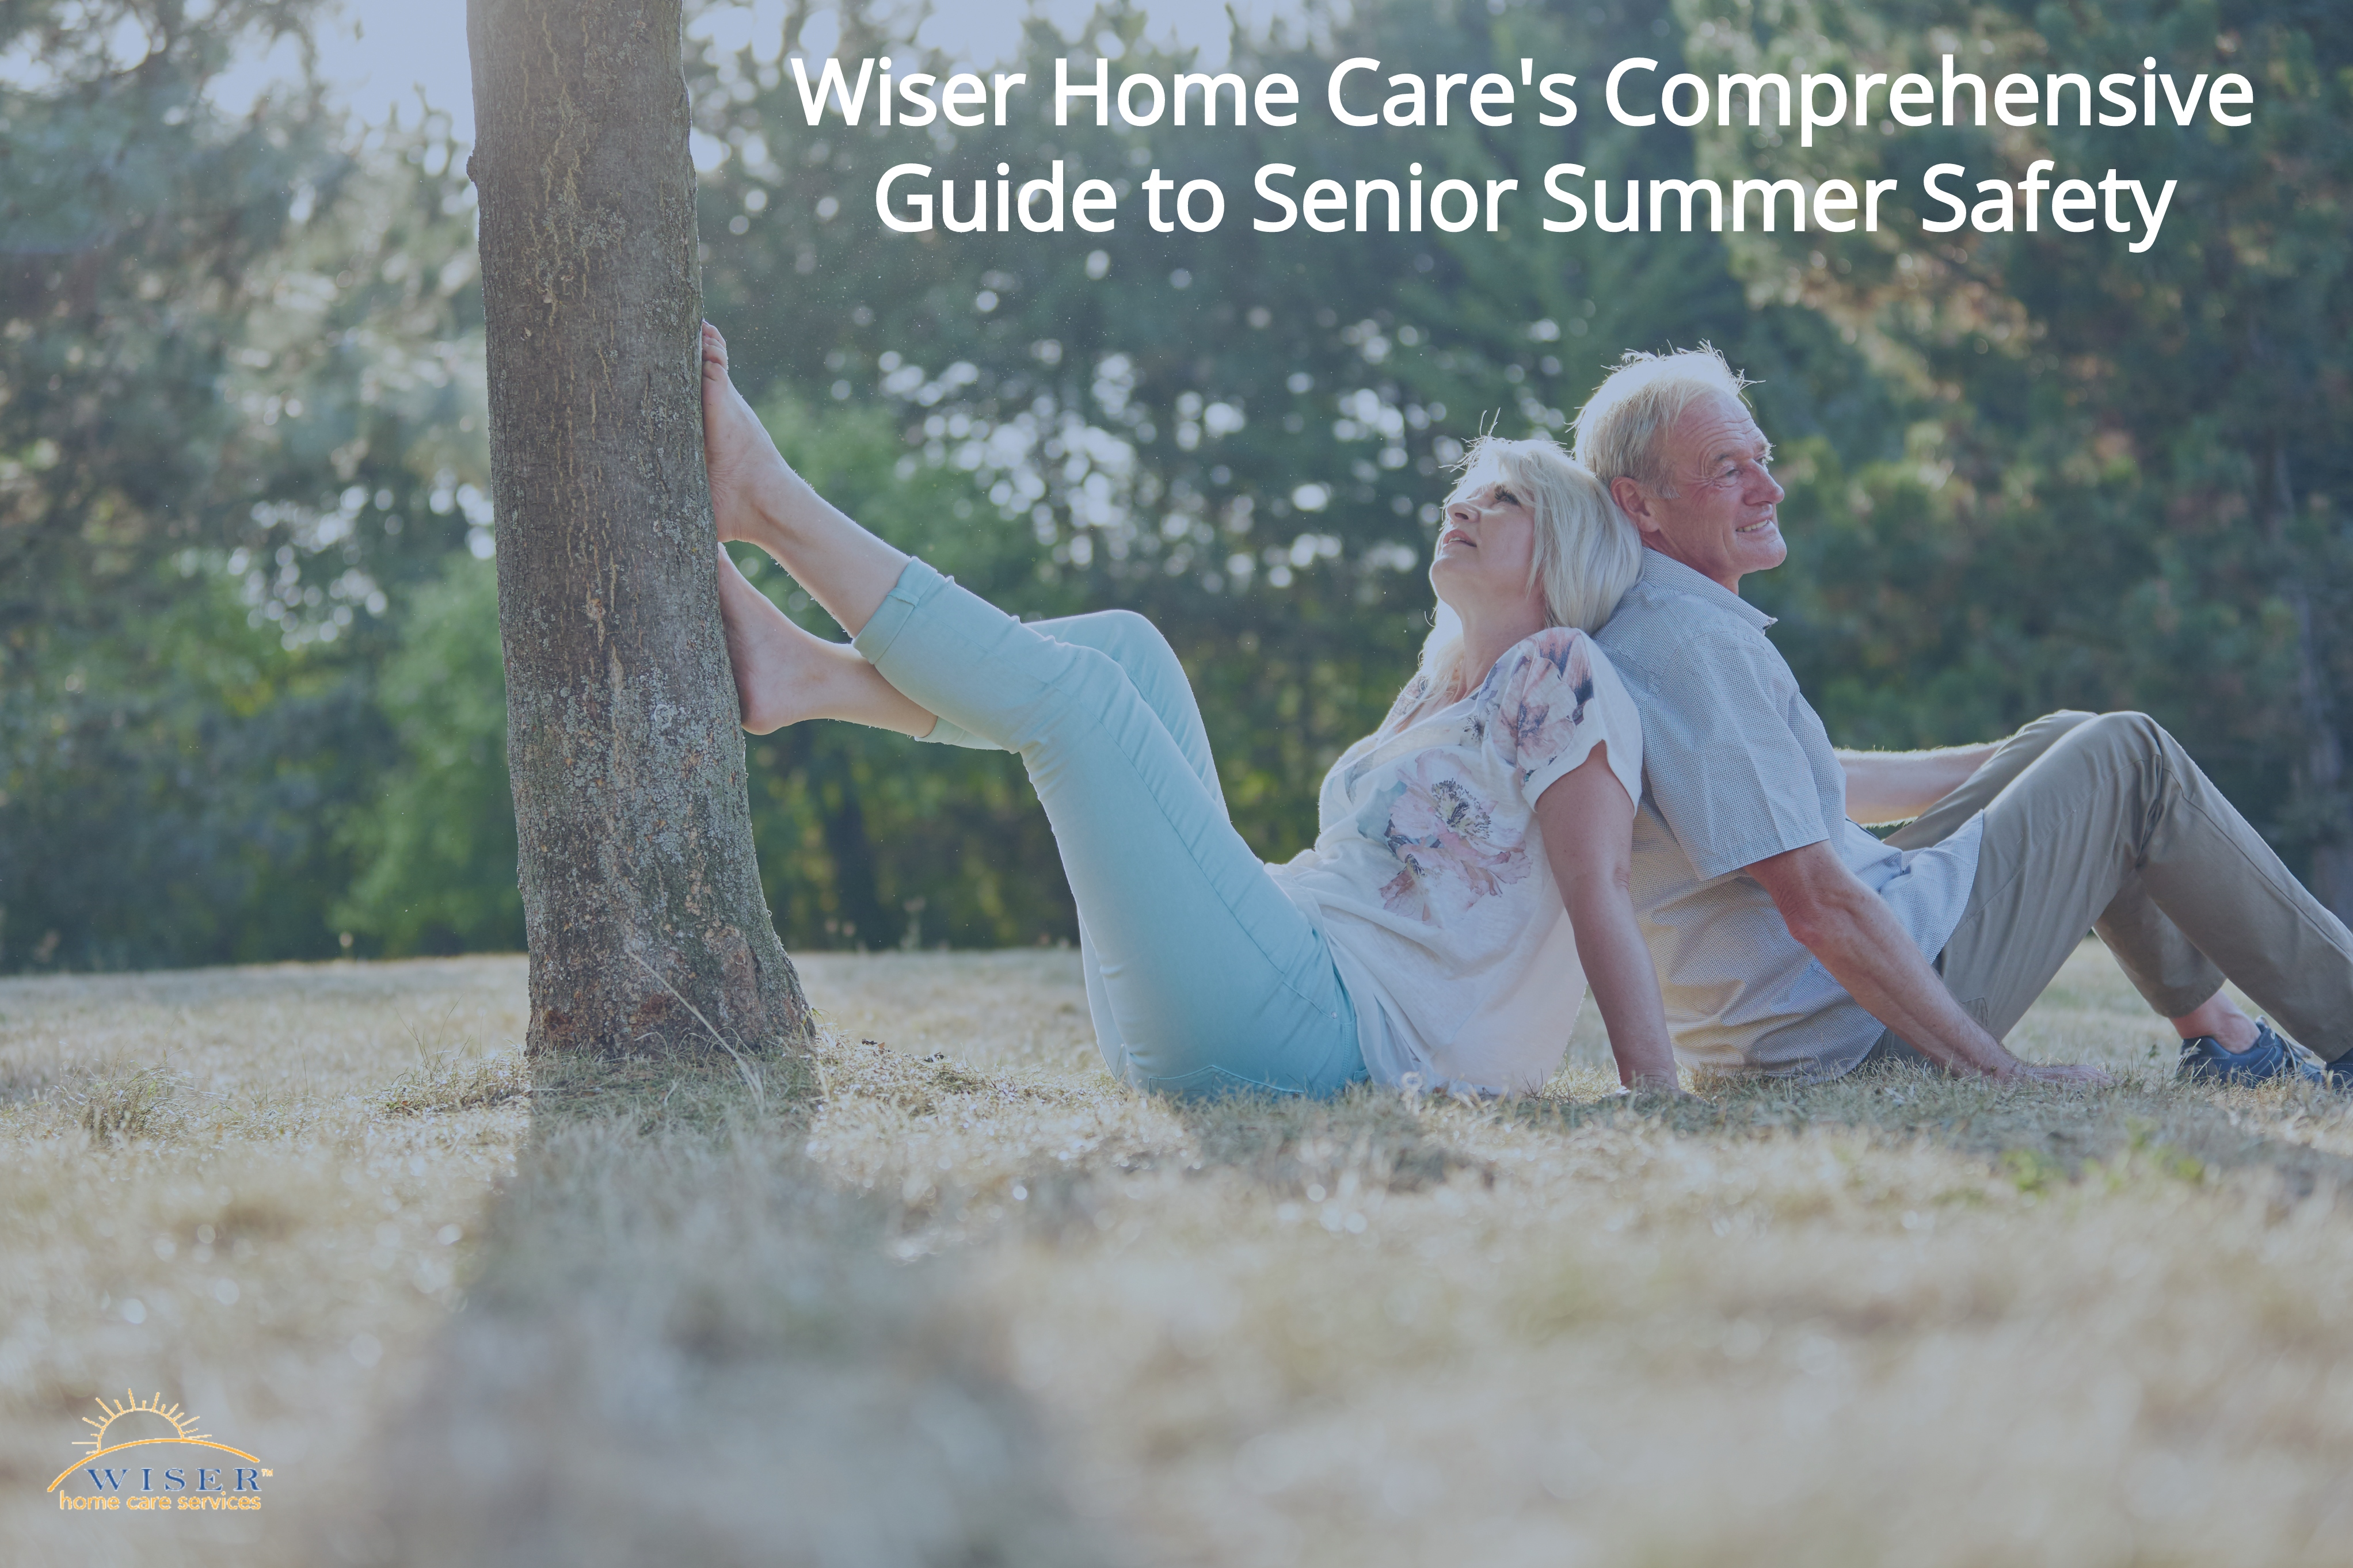 Wiser Home Care's Comprehensive Guide to Senior Summer Safety